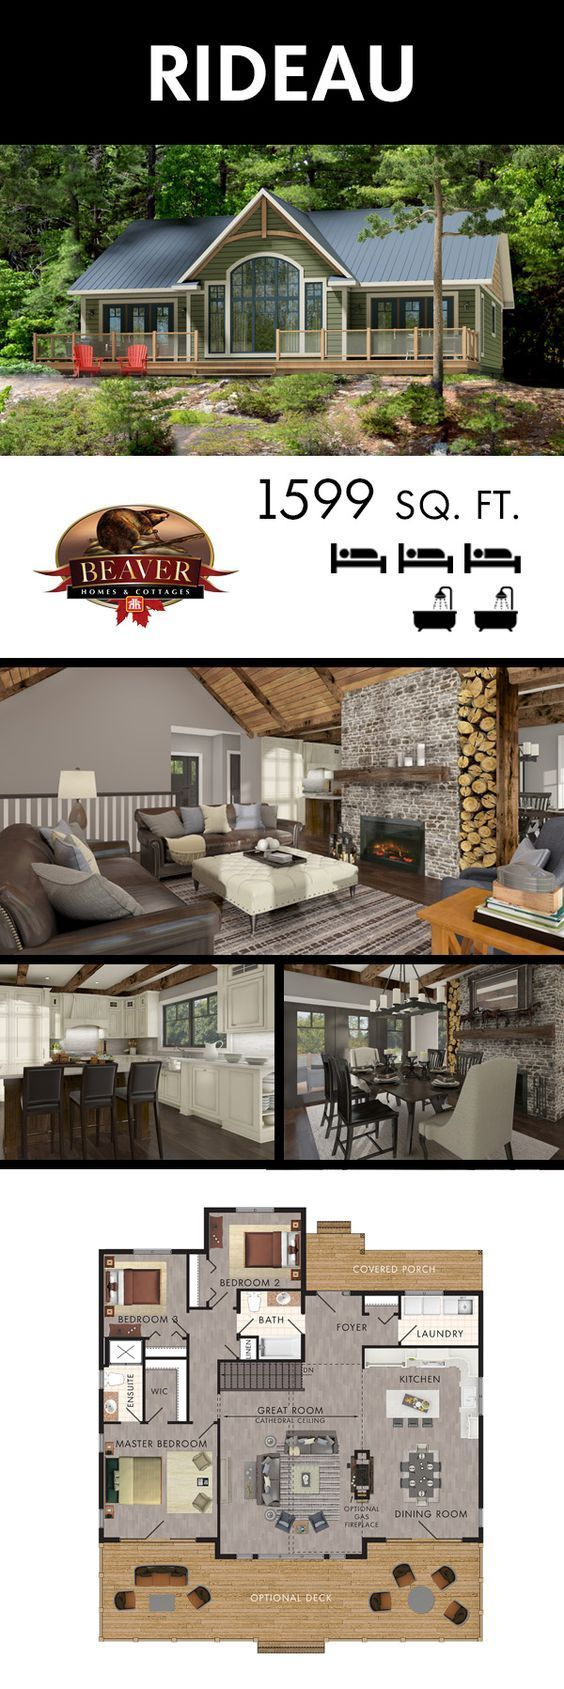 floor plan 3 bdrms, can extend LR area into deck to make it larger, add bookshelves on bsmnt stairway wall, cut deck size if no space, Rideau model from Beaver is part of Lake house plans -